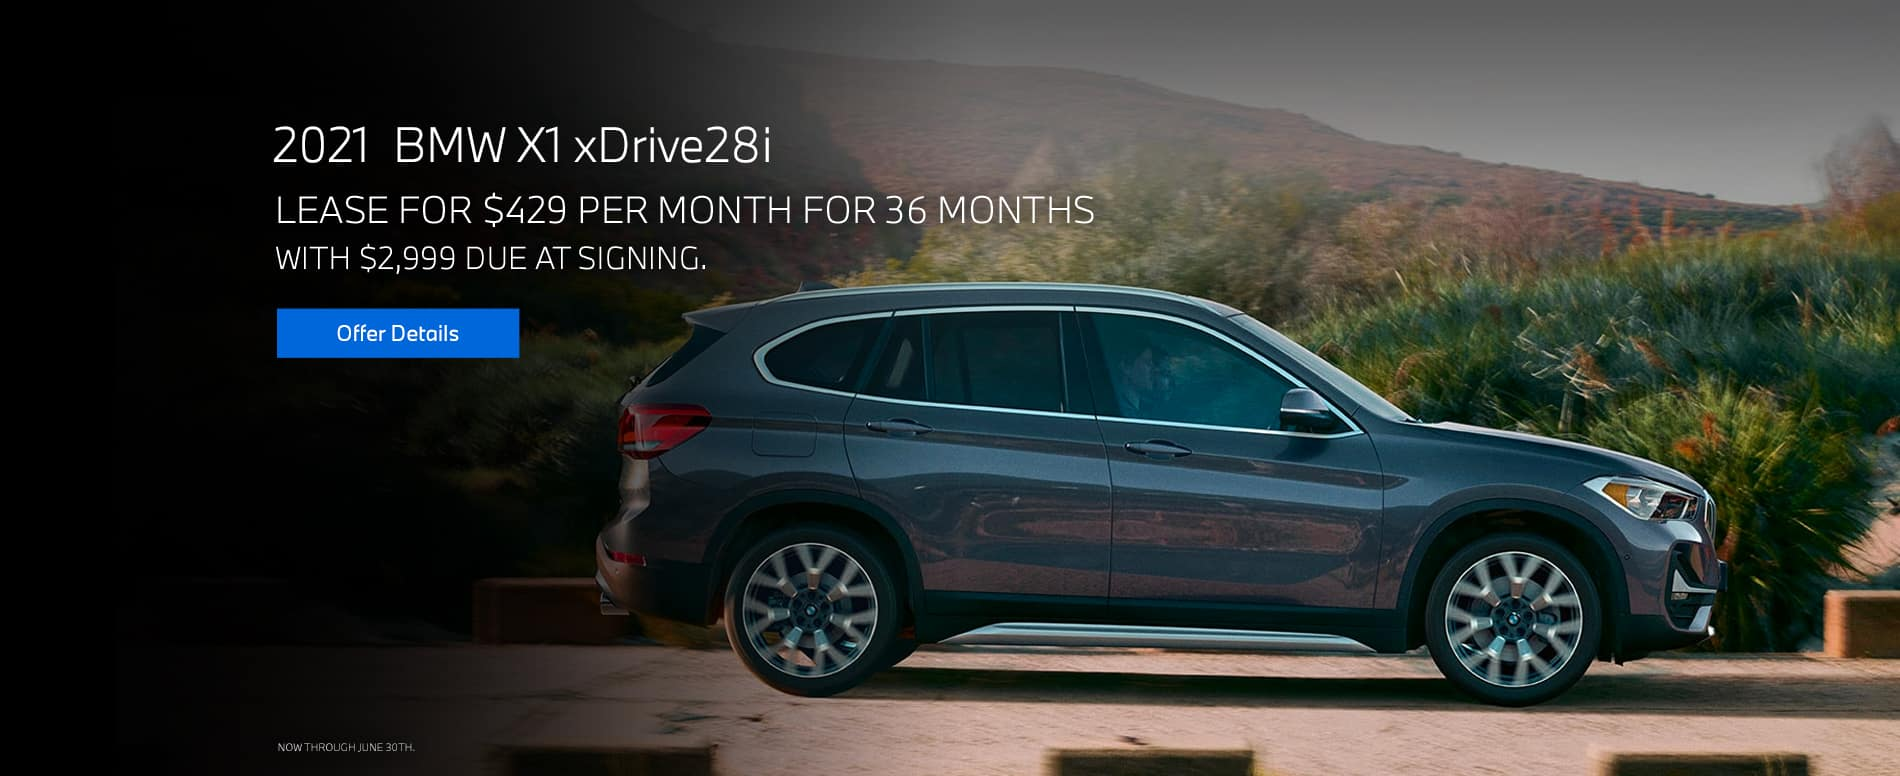 Lease a 2021 X1 xDrive28i $429 per month for 36 months with $2,999 due at signing.